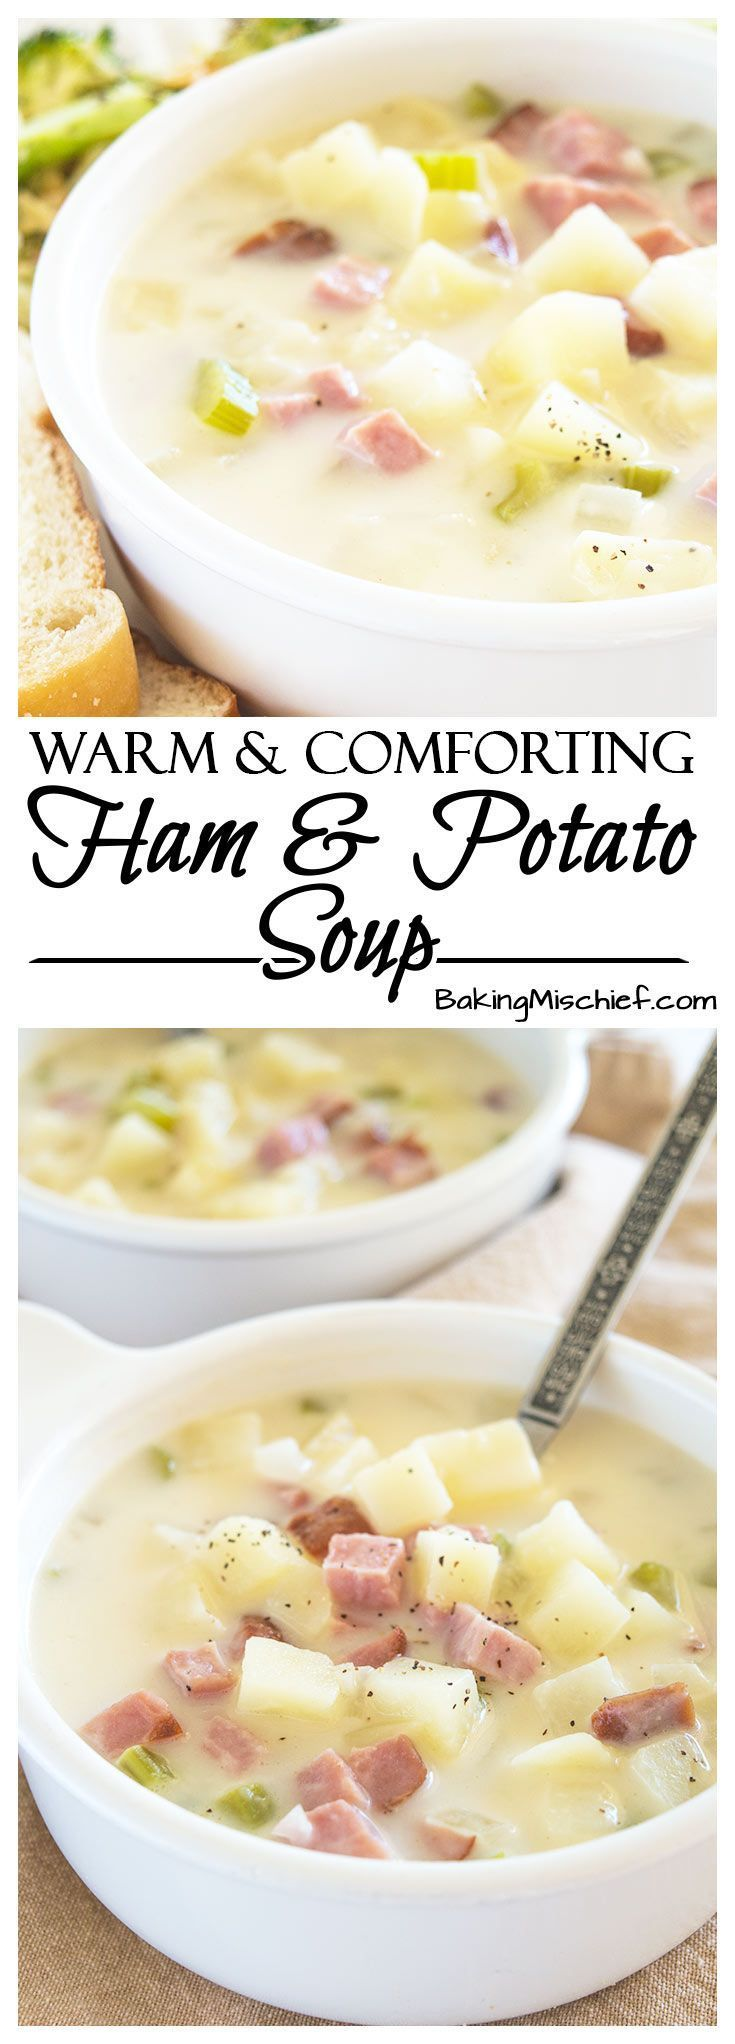 Easy and Comforting Ham and Potato Soup - Pure comfort food in a bowl. Easy, fast, and low-calorie, this is one of my favorite busy weeknight meals. Recipe includes nutritional information and make-ahead instructions. From http://BakingMischief.com